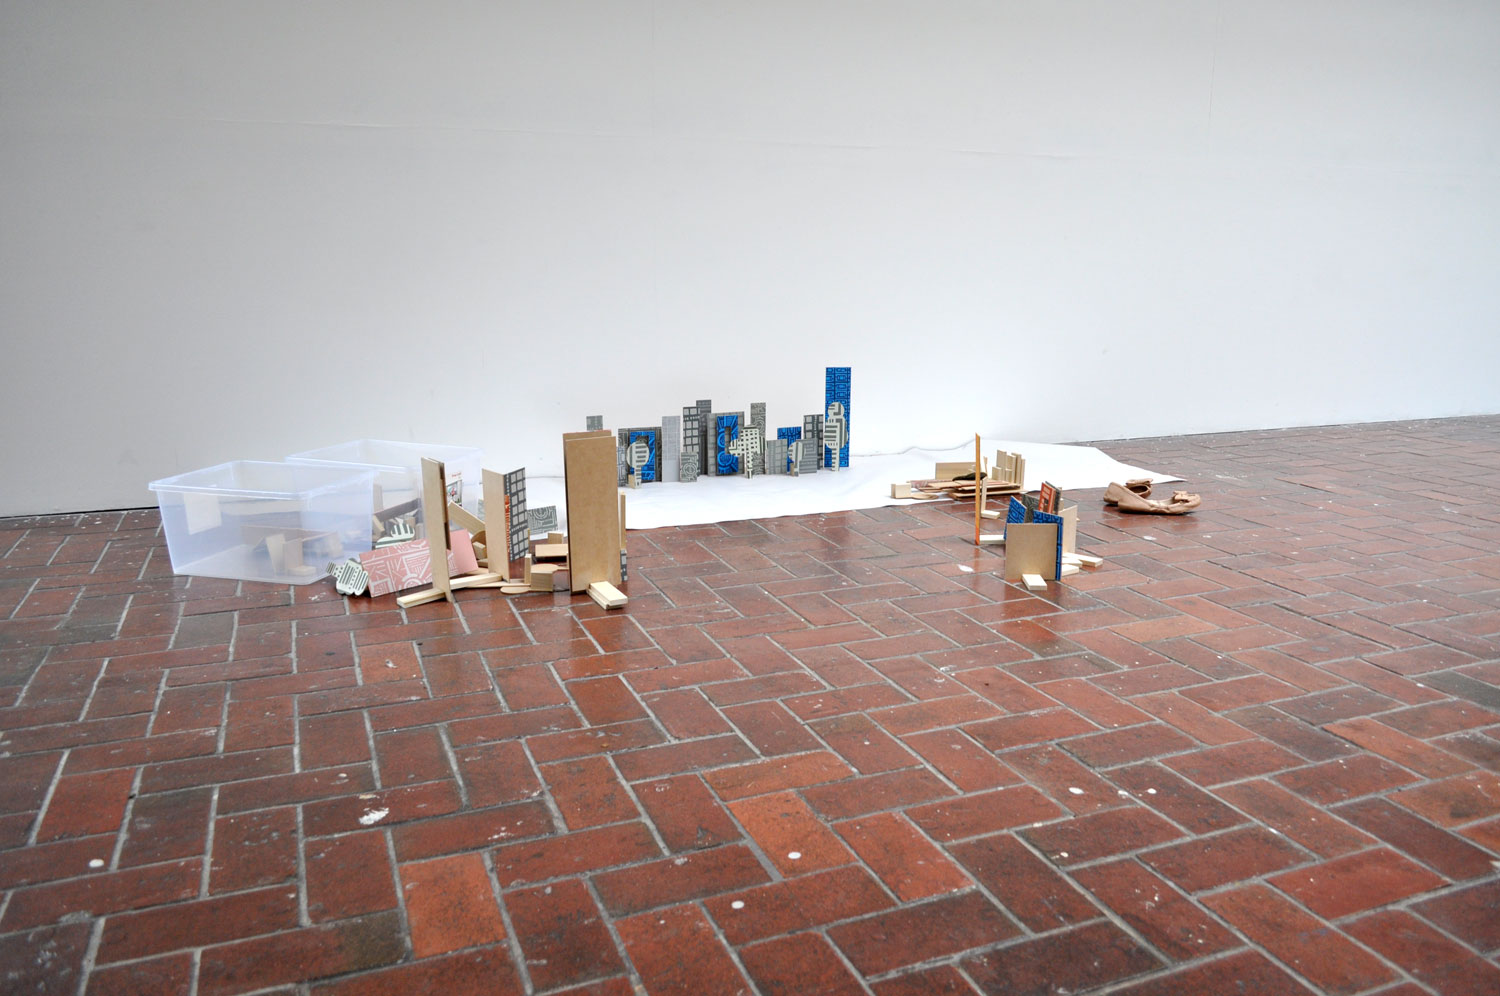 Marcus Clarke and roundabouts, 2012, Permaset on MDF, dimensions variable